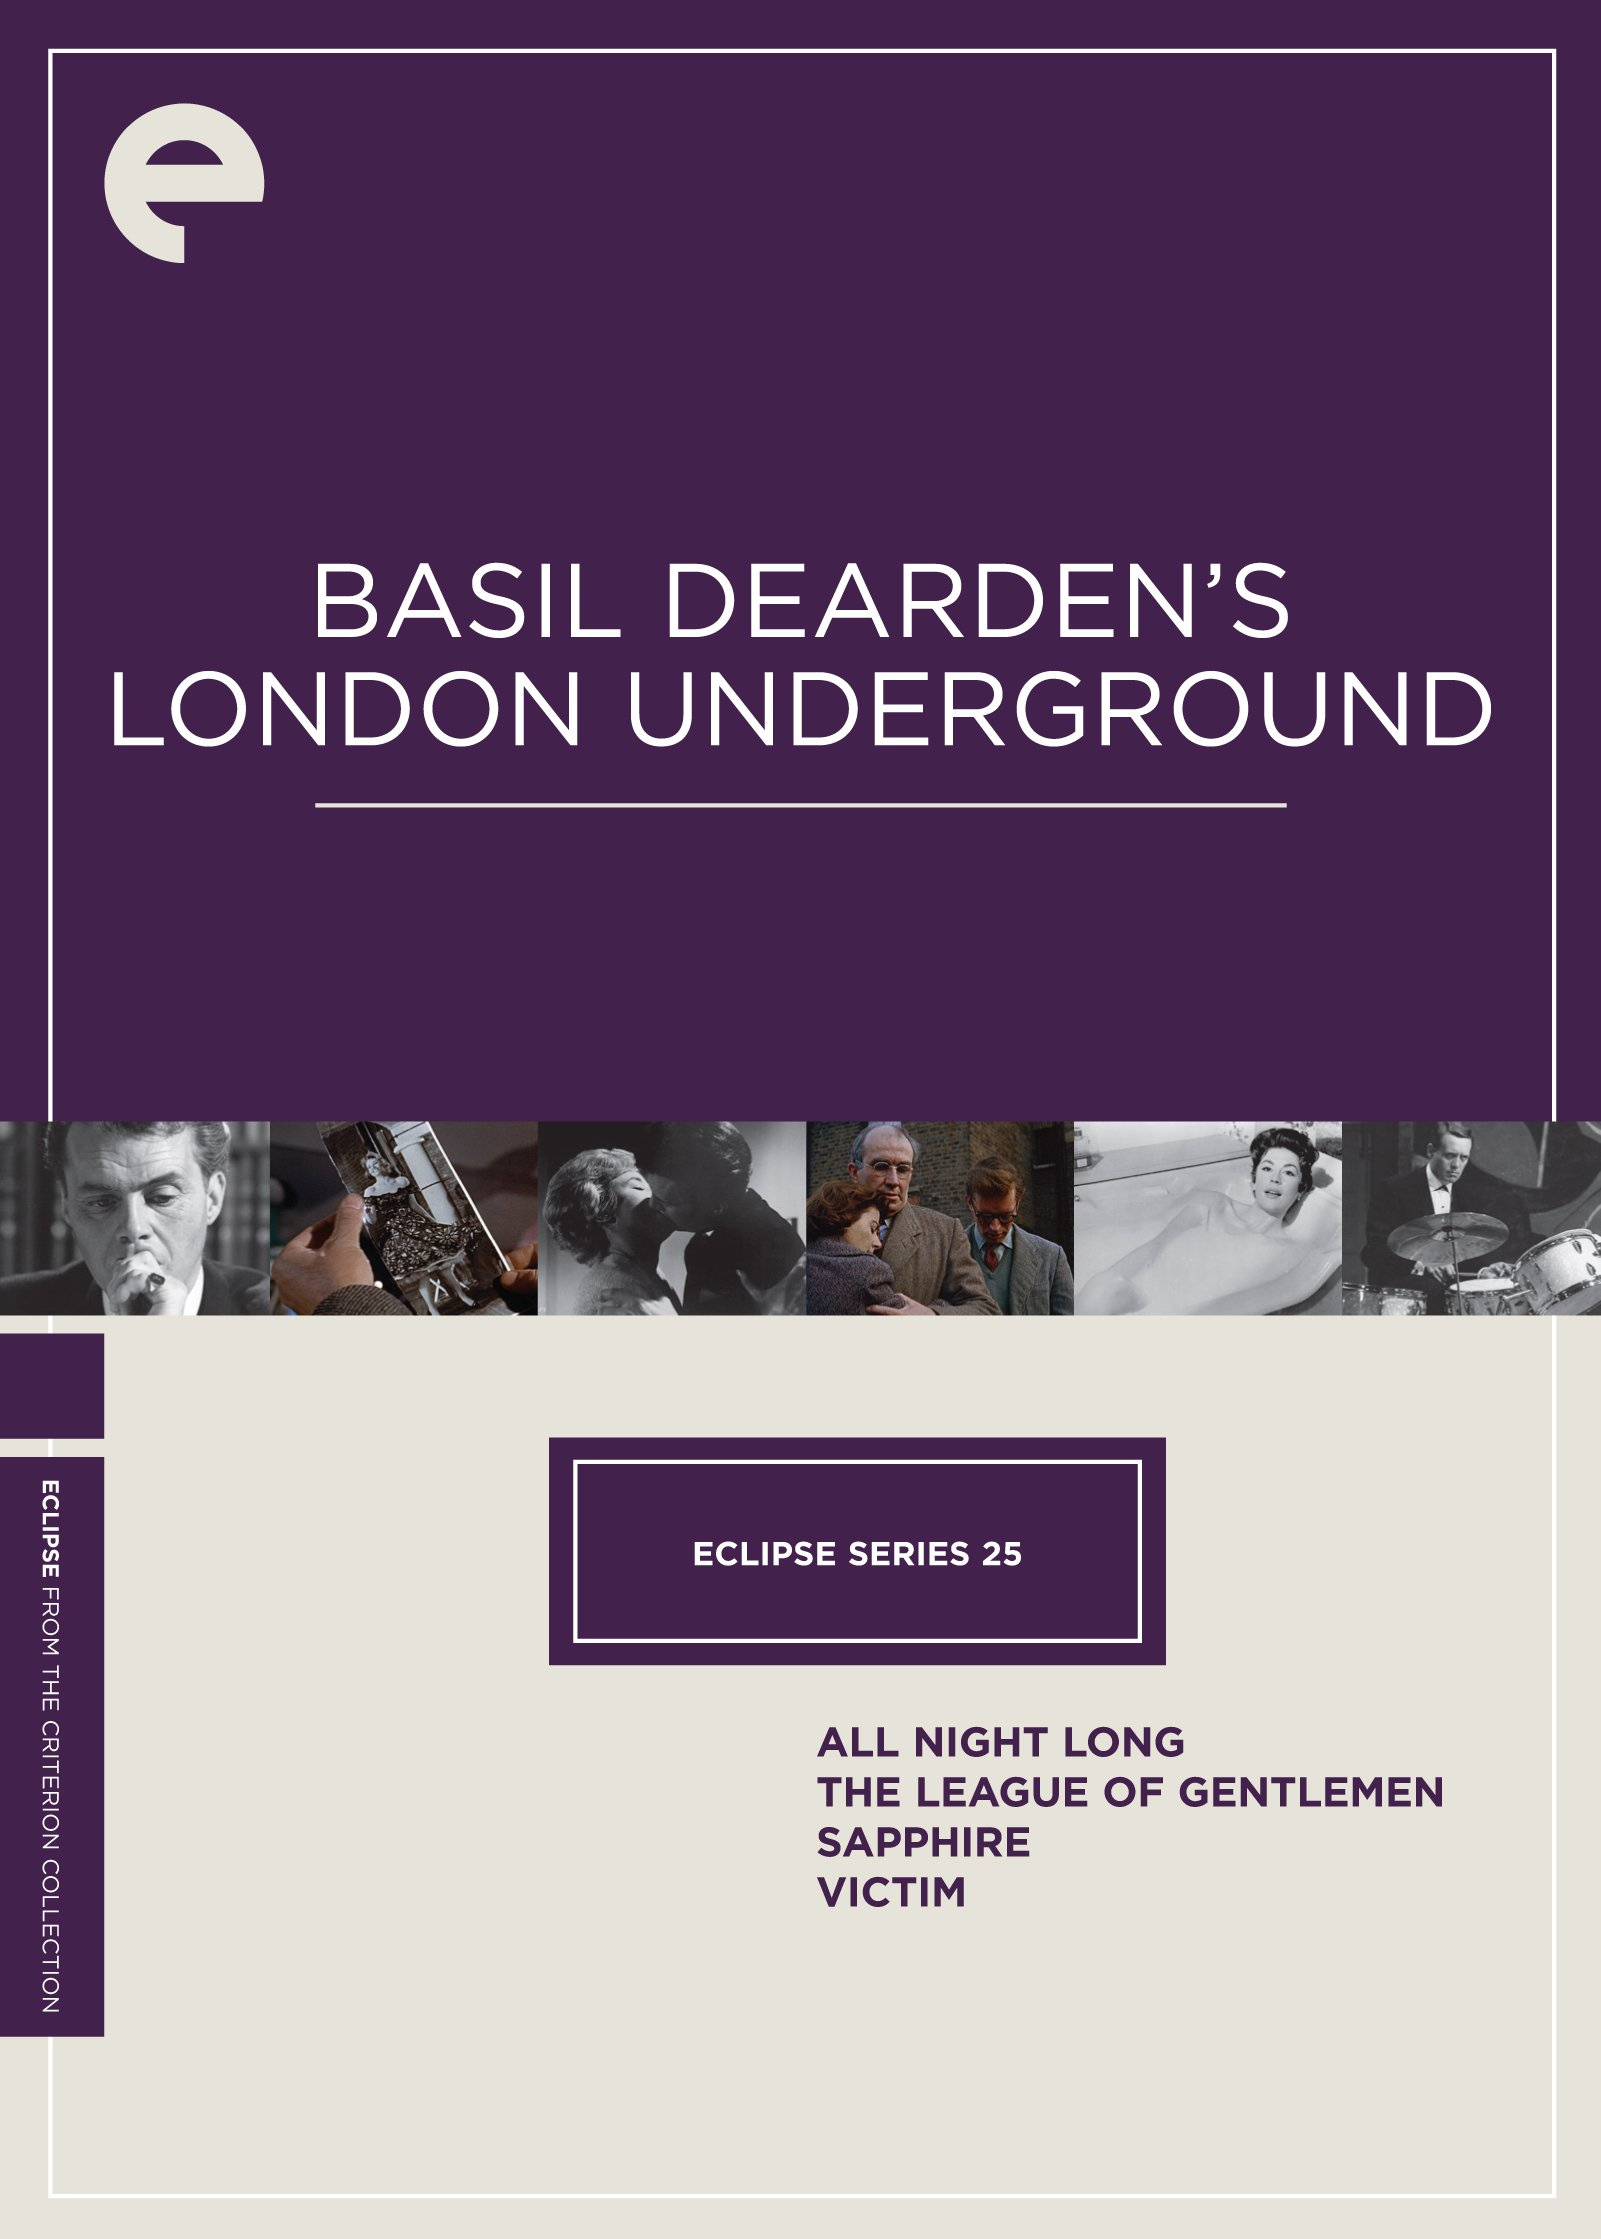 Eclipse Series 25: Basil Dearden's London Underground (Sapphire / The League of Gentlemen / Victim / All Night Long) (The Criterion Collection) by Criterion